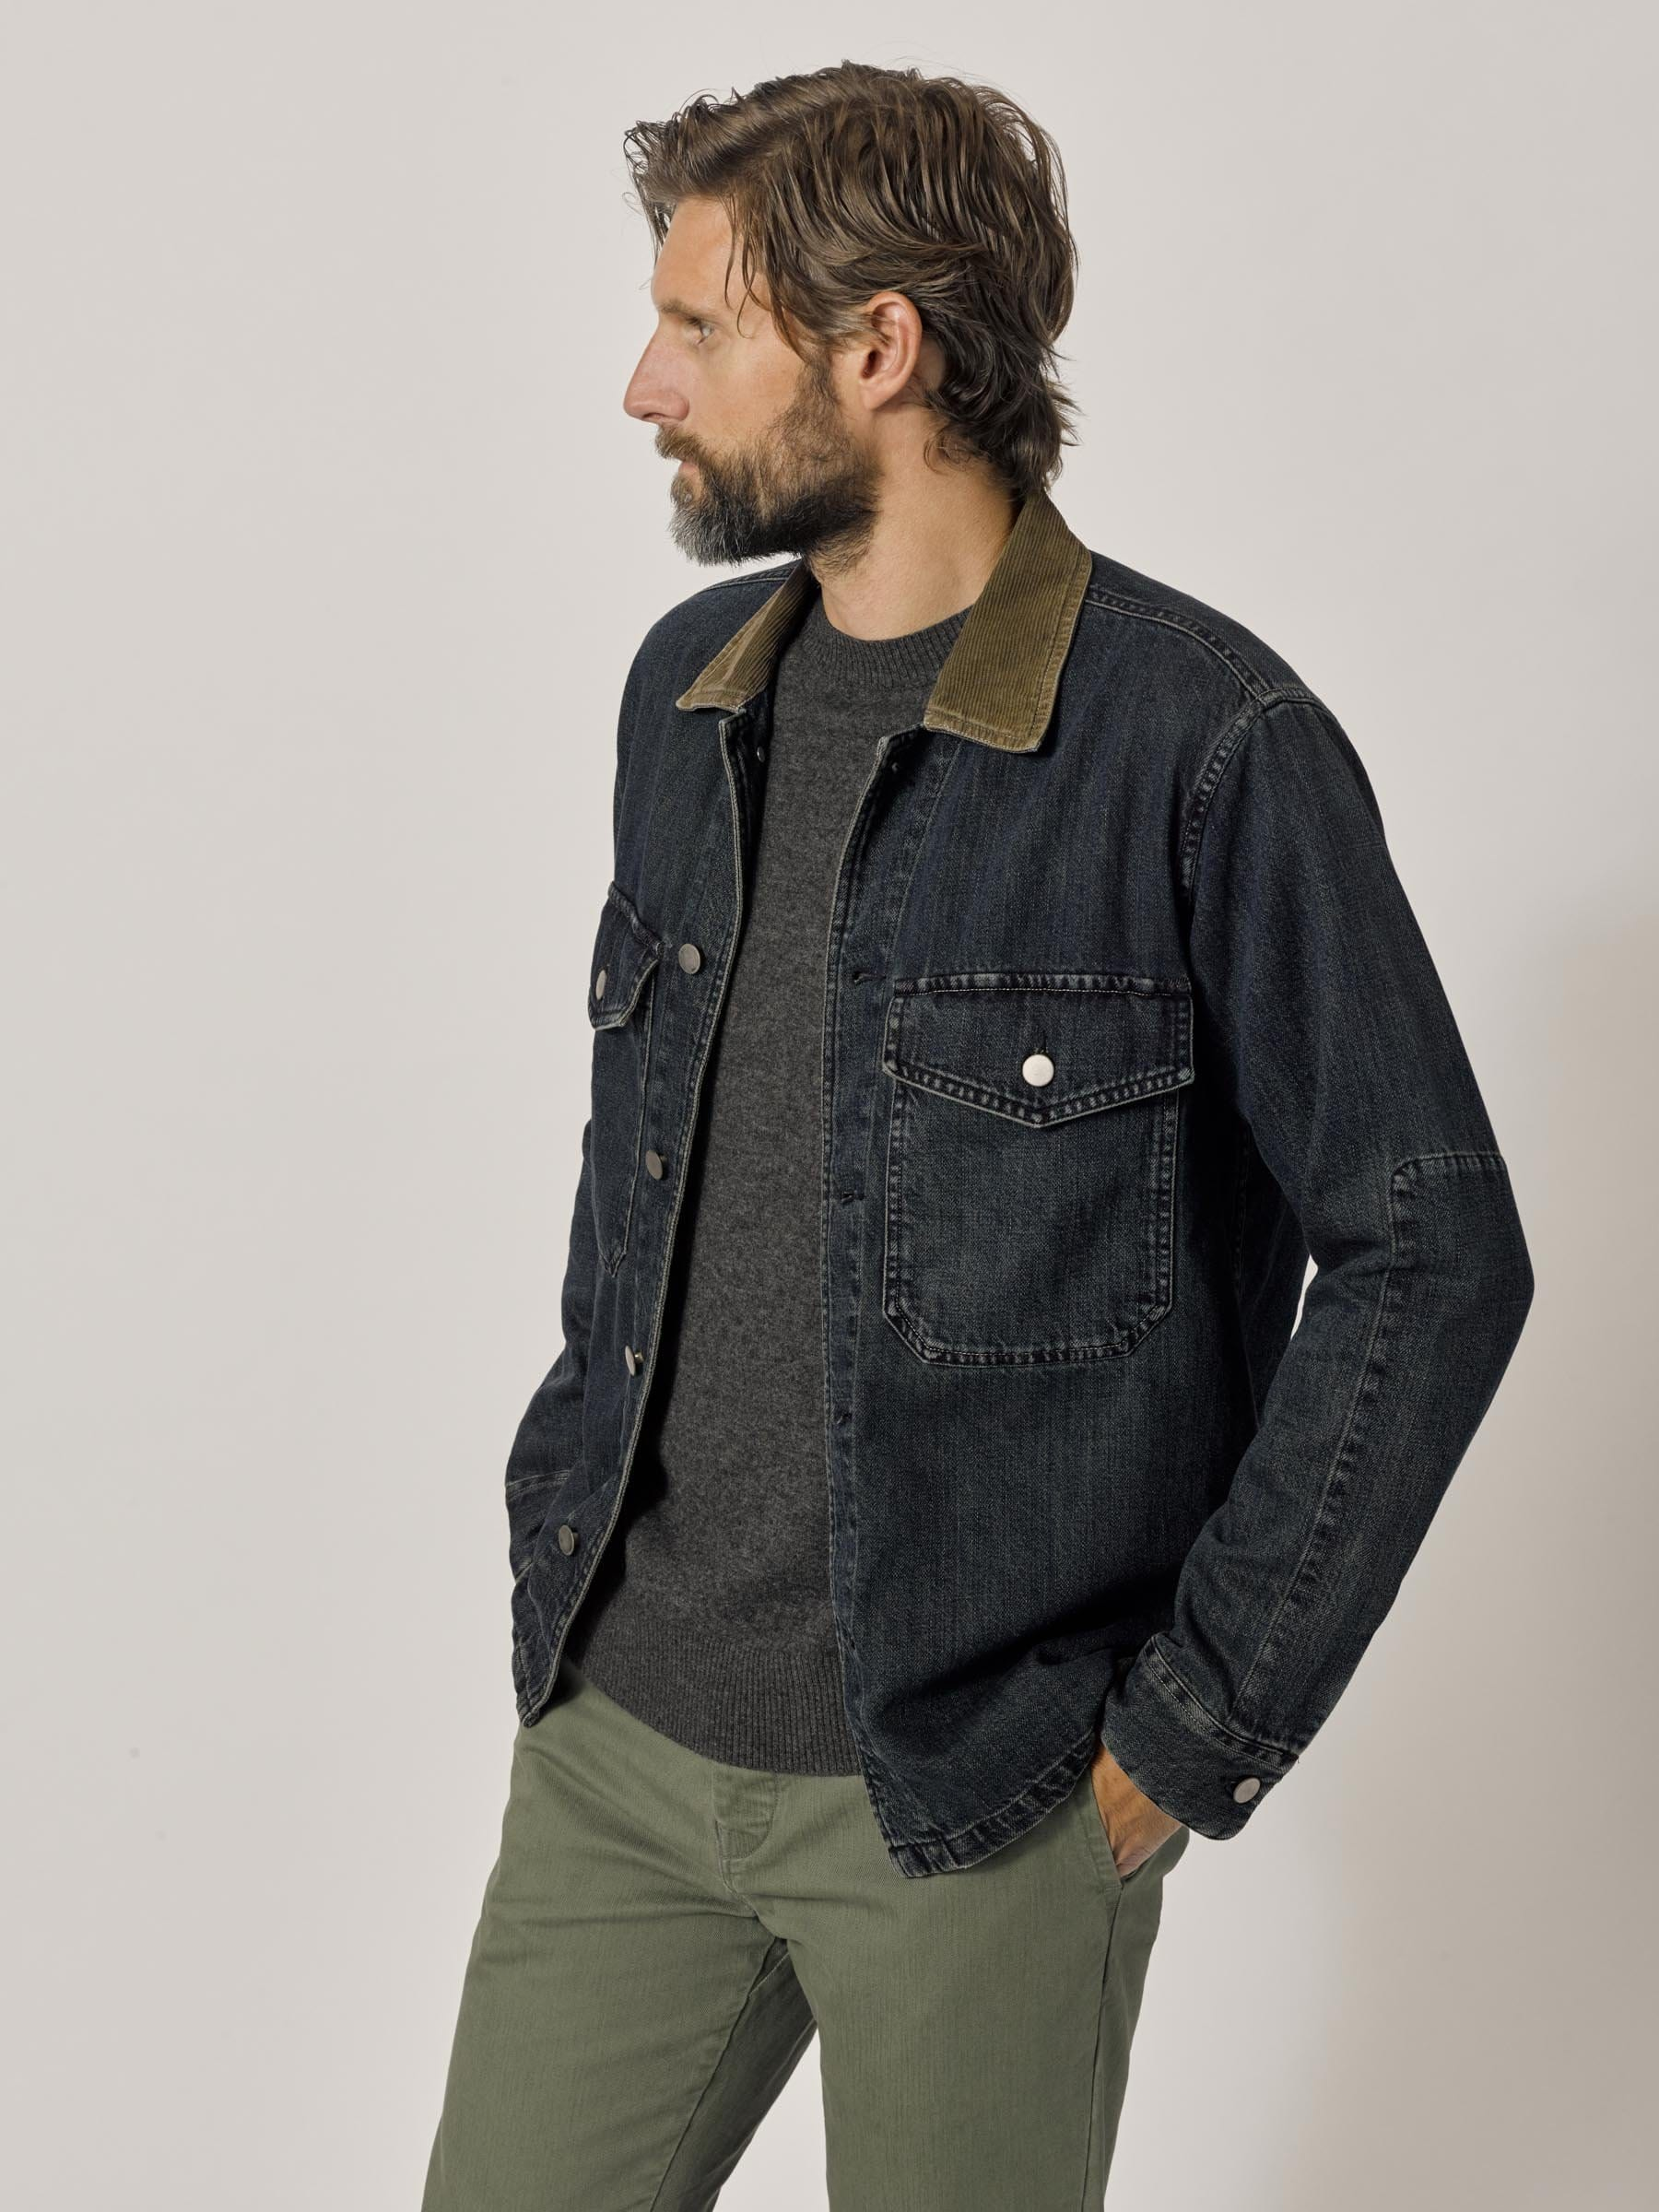 Buck Mason - M007 Medium Wash Denim Two Pocket Field Shirt